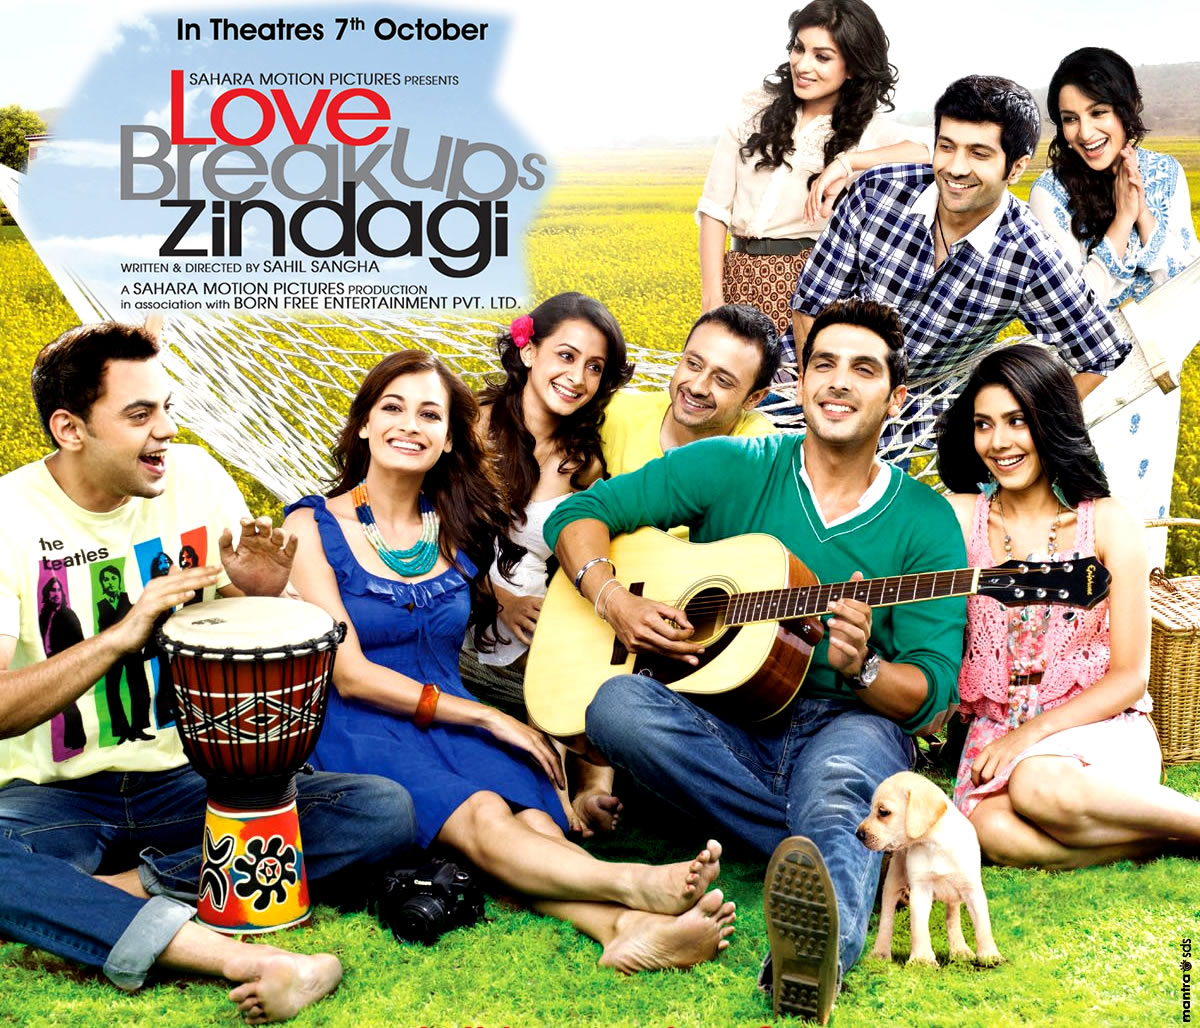 Love breakup zindagi movies songs : Transformers movie videos download